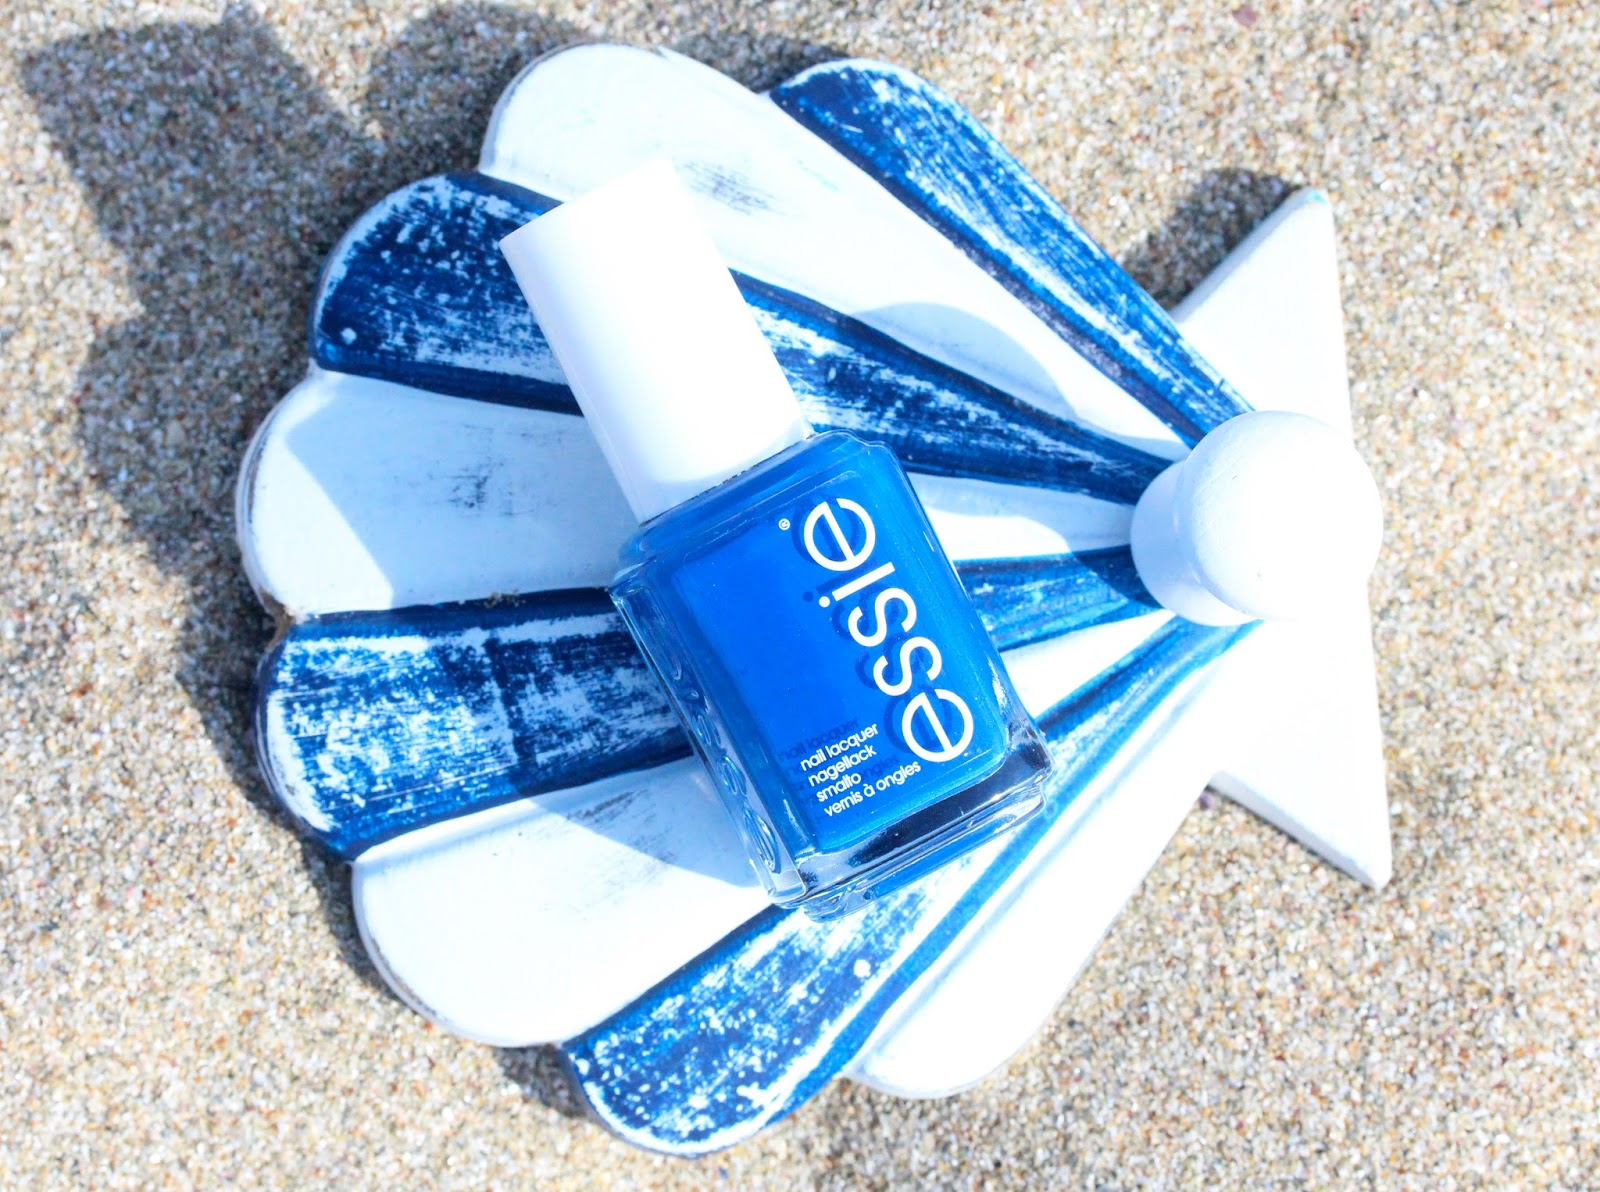 essie mezmerised nail polish